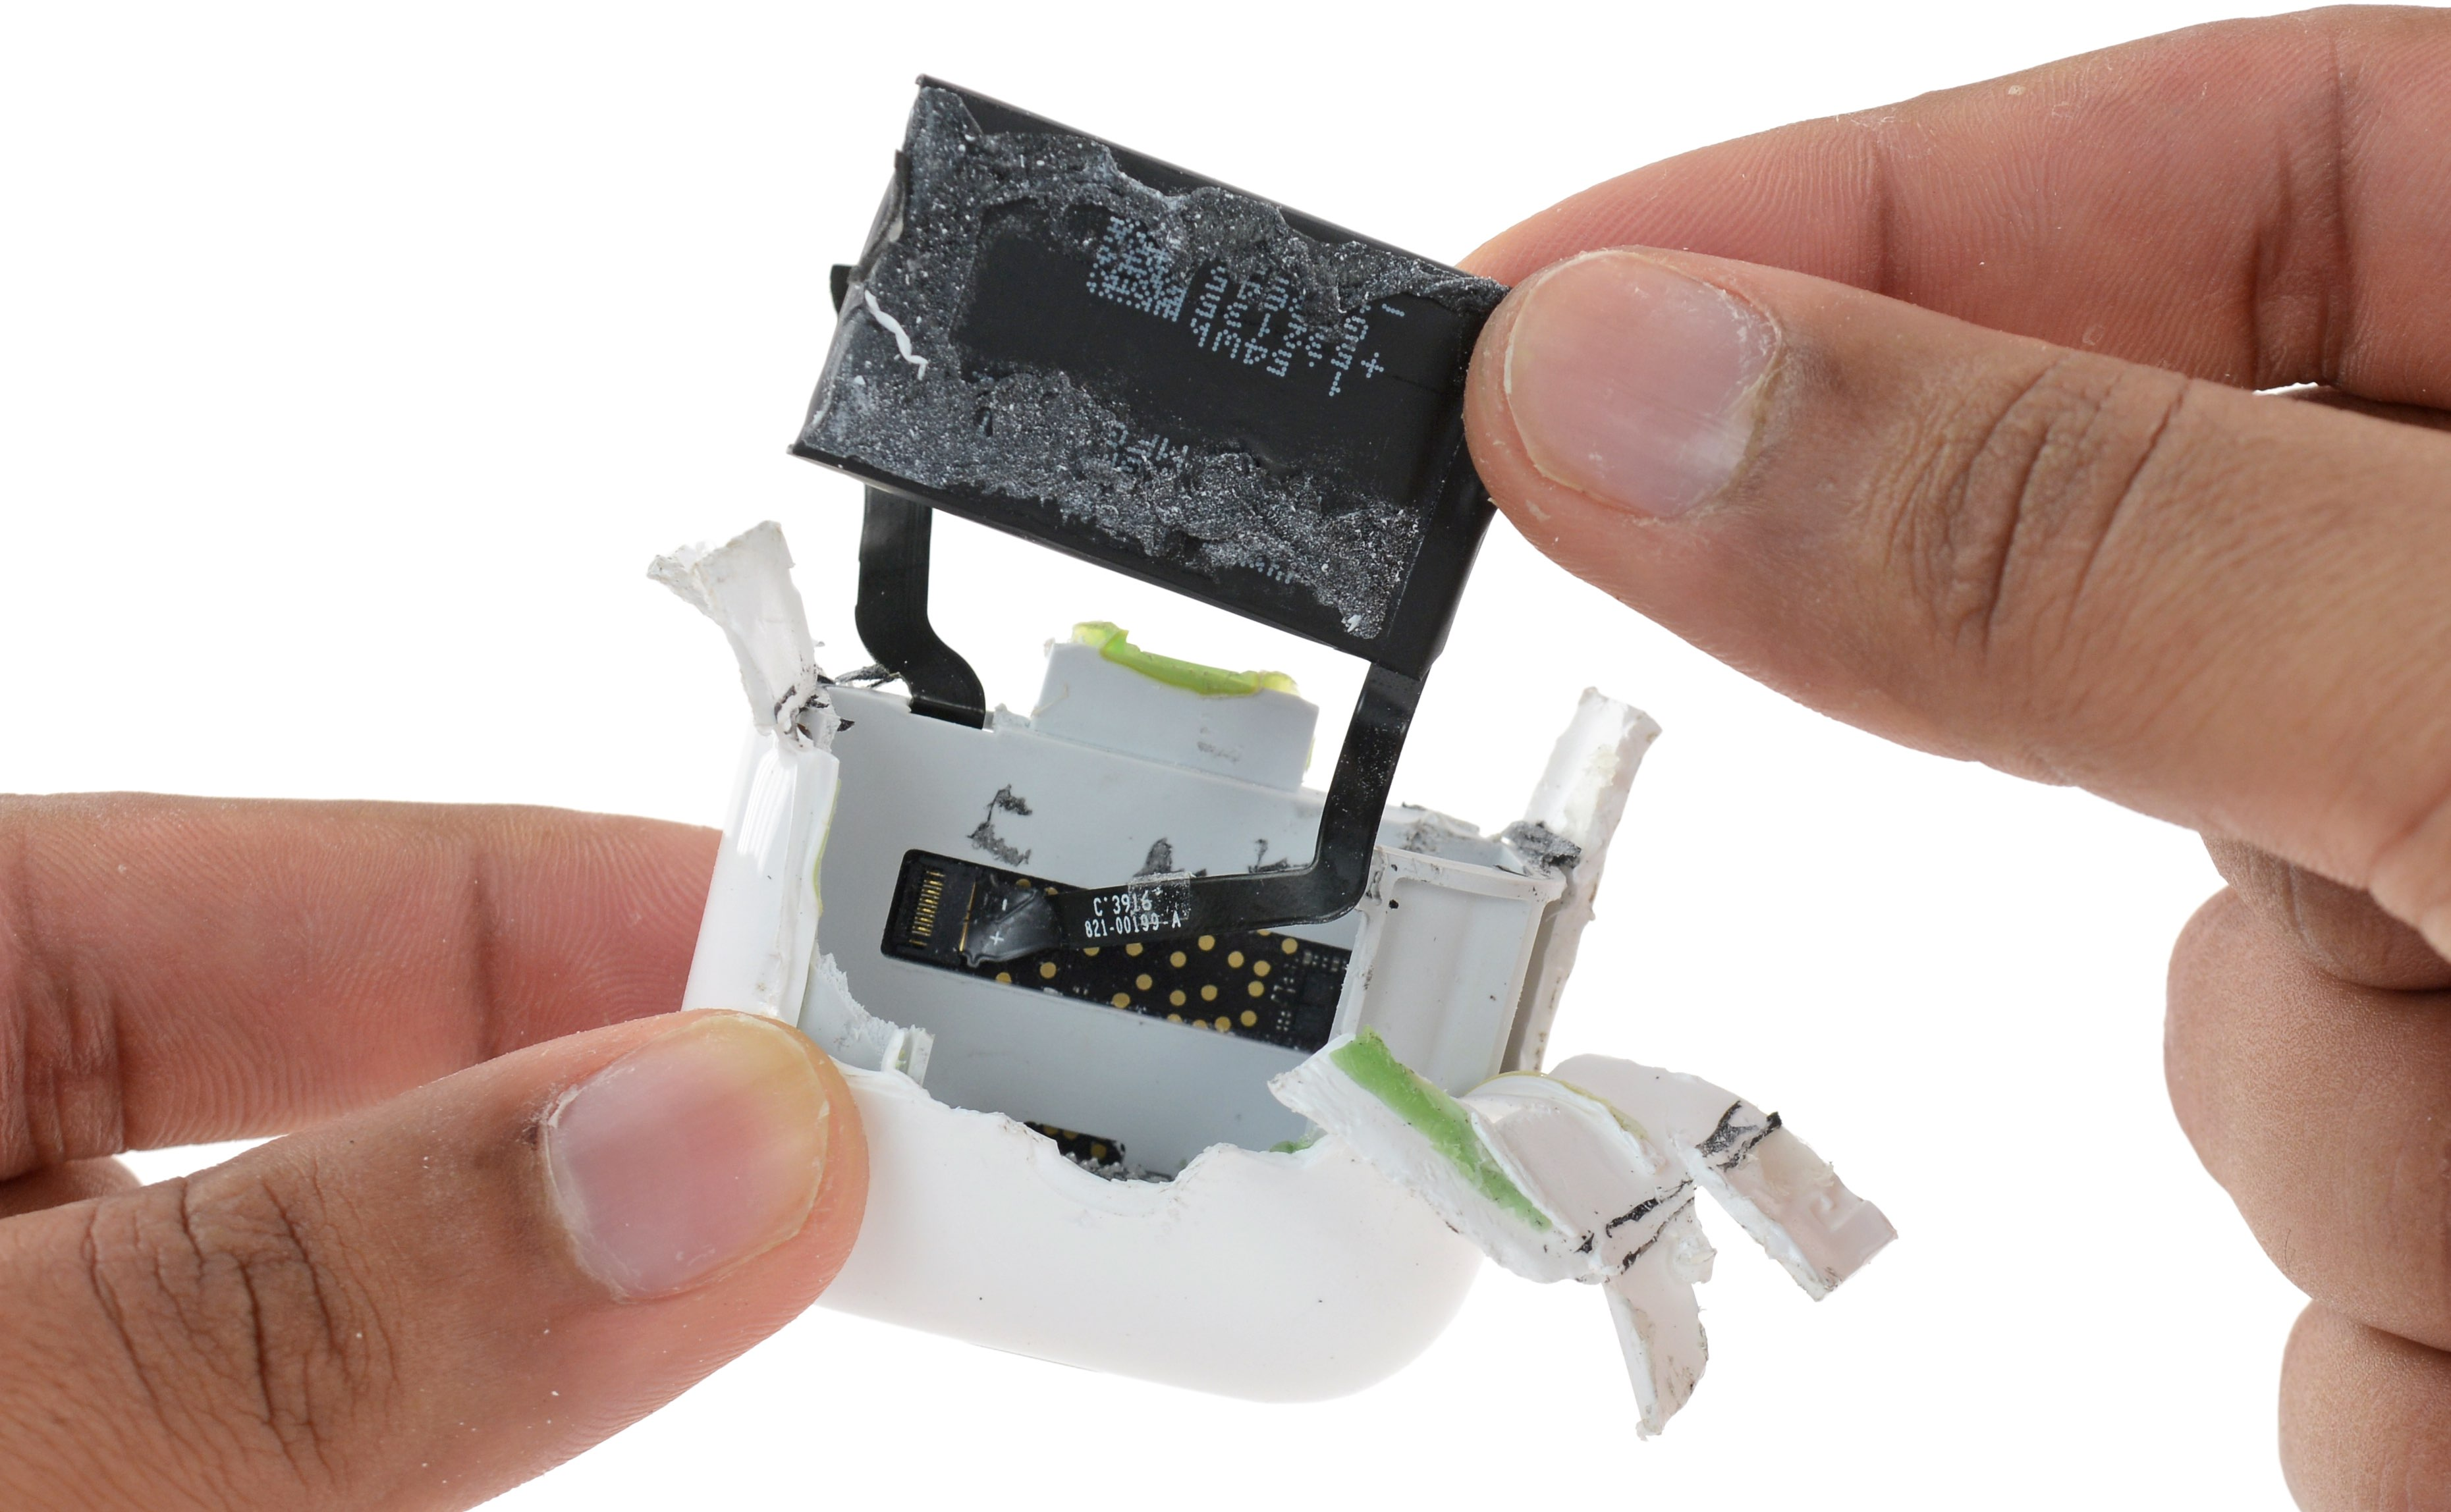 AirPods iFixit image 011